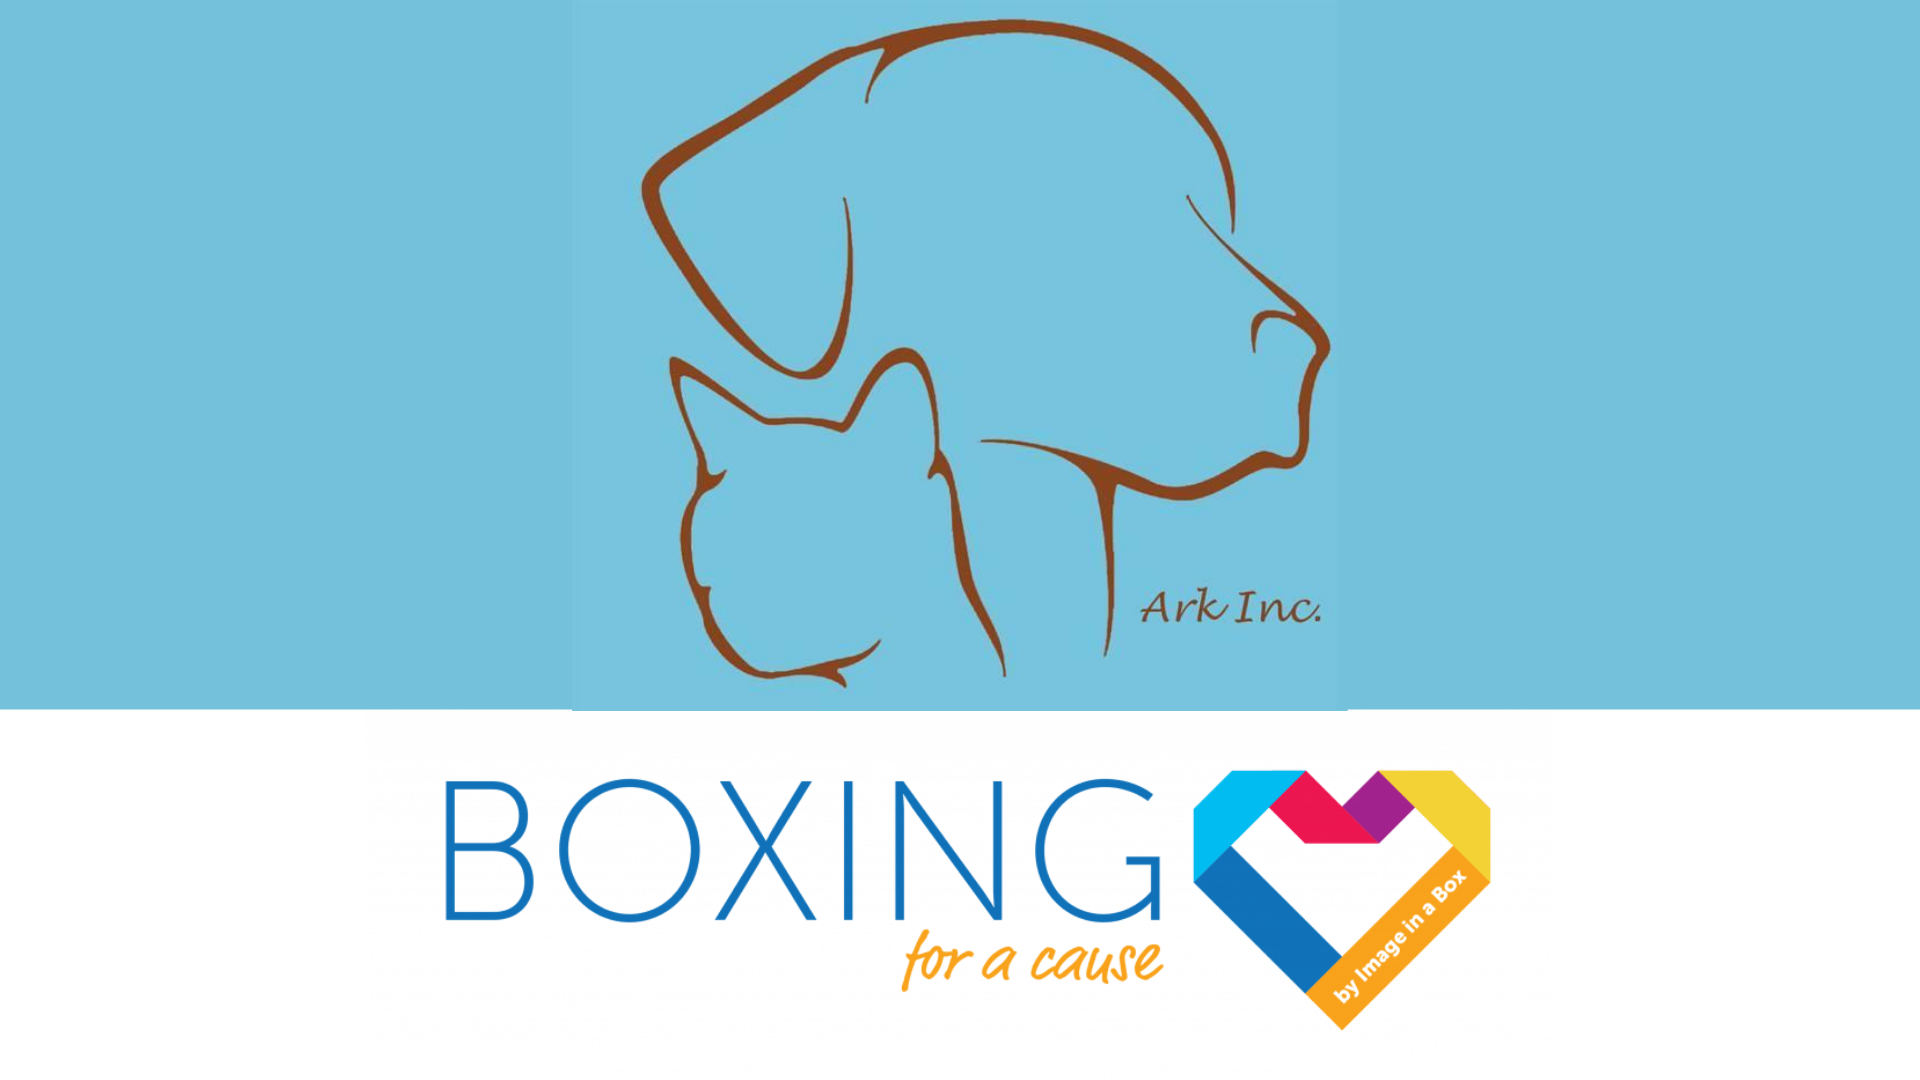 Featured image on Boxing for a Cause - The Ark Inc. - September 2020